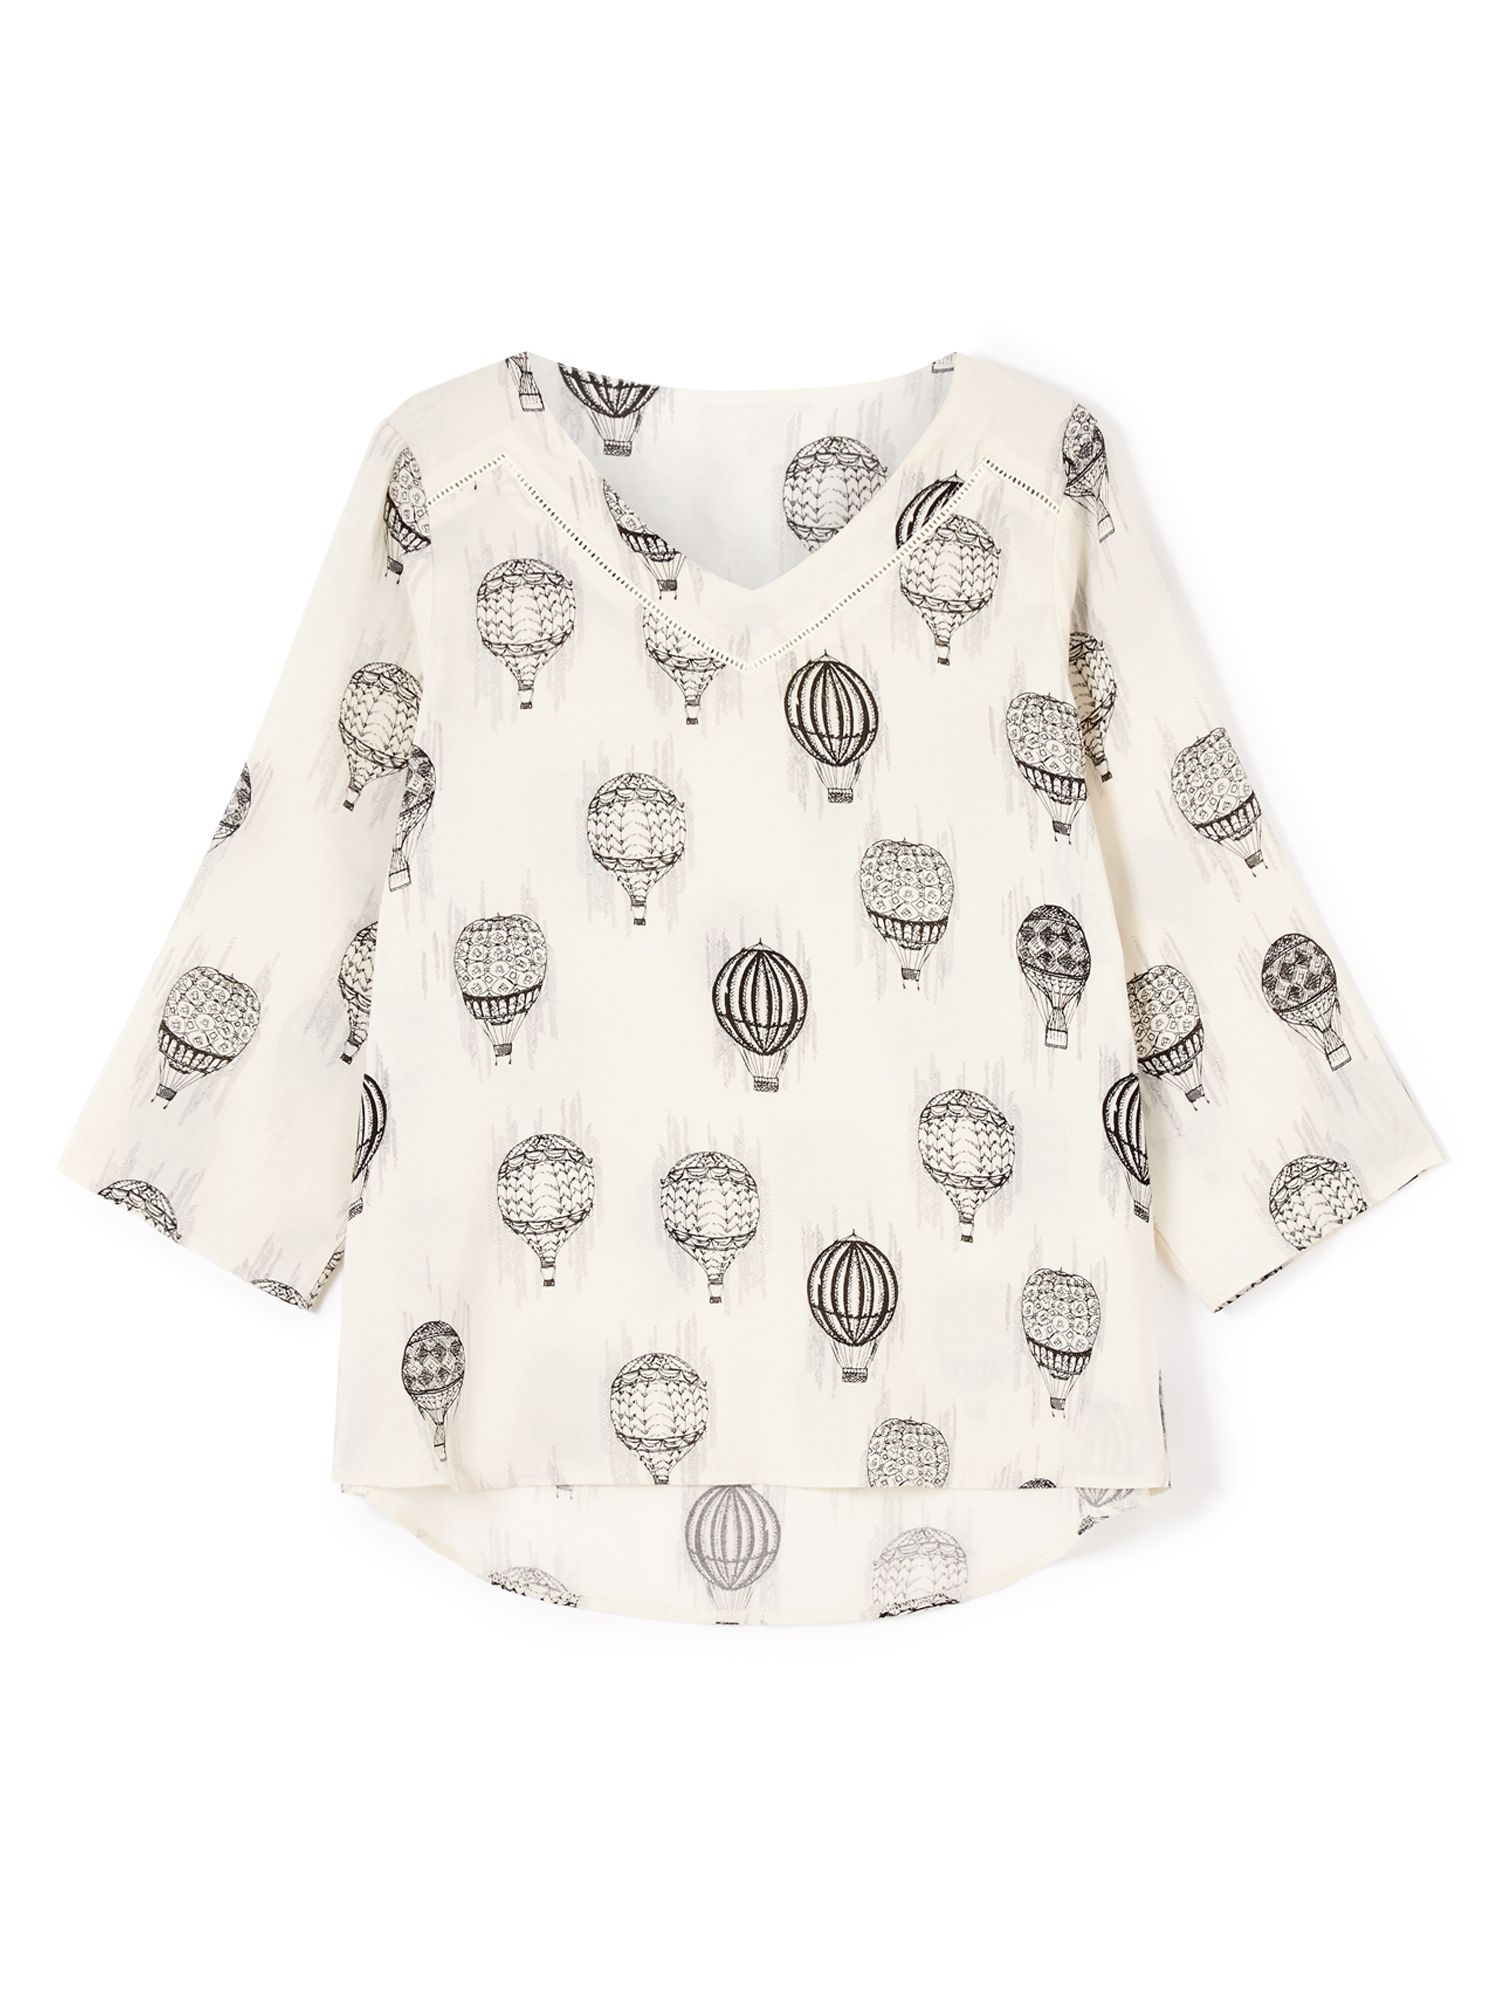 Dash Hot Air Balloon Woven Top, Multi-Coloured